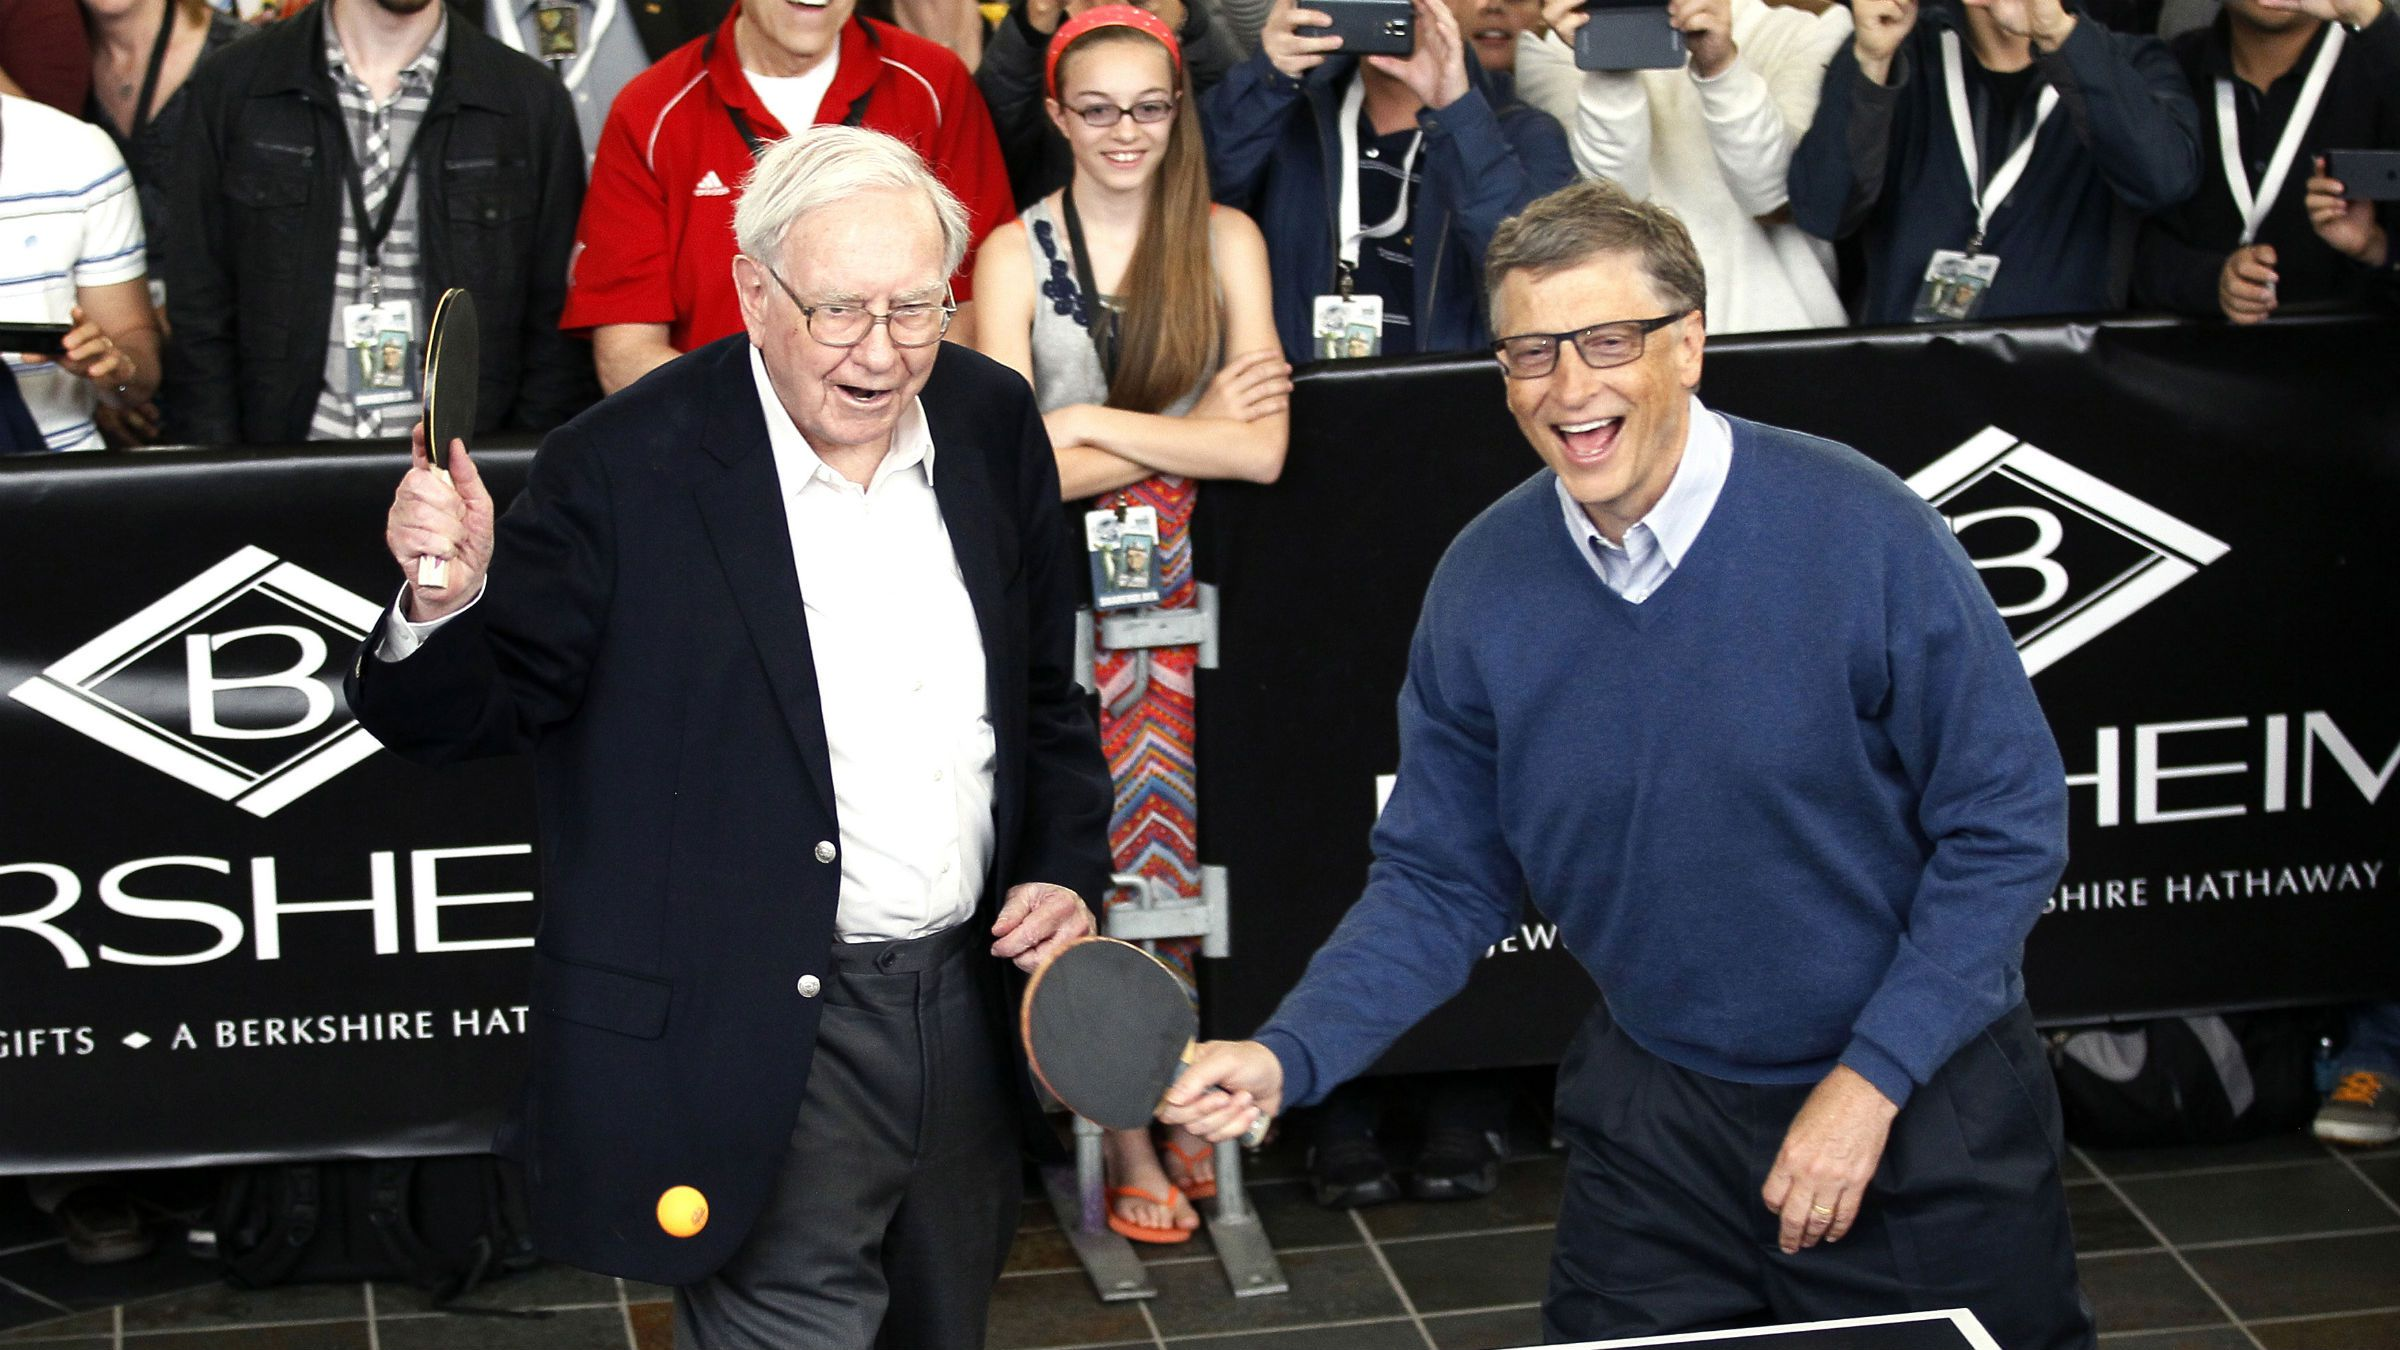 """Berkshire Hathaway CEO Warren Buffett (L) and friend Bill Gates, founder of Microsoft, play table tennis at a Berkshire sponsored reception in Omaha, Nebraska May 4, 2014 as part of the company annual meeting weekend. The investment guru was peppered with questions at the meeting, part of a mostly festive weekend that Buffett calls """"Woodstock for Capitalists,"""" following concerns that Berkshire last year missed Buffett's five-year growth target for the first time in his 49 years at the helm."""